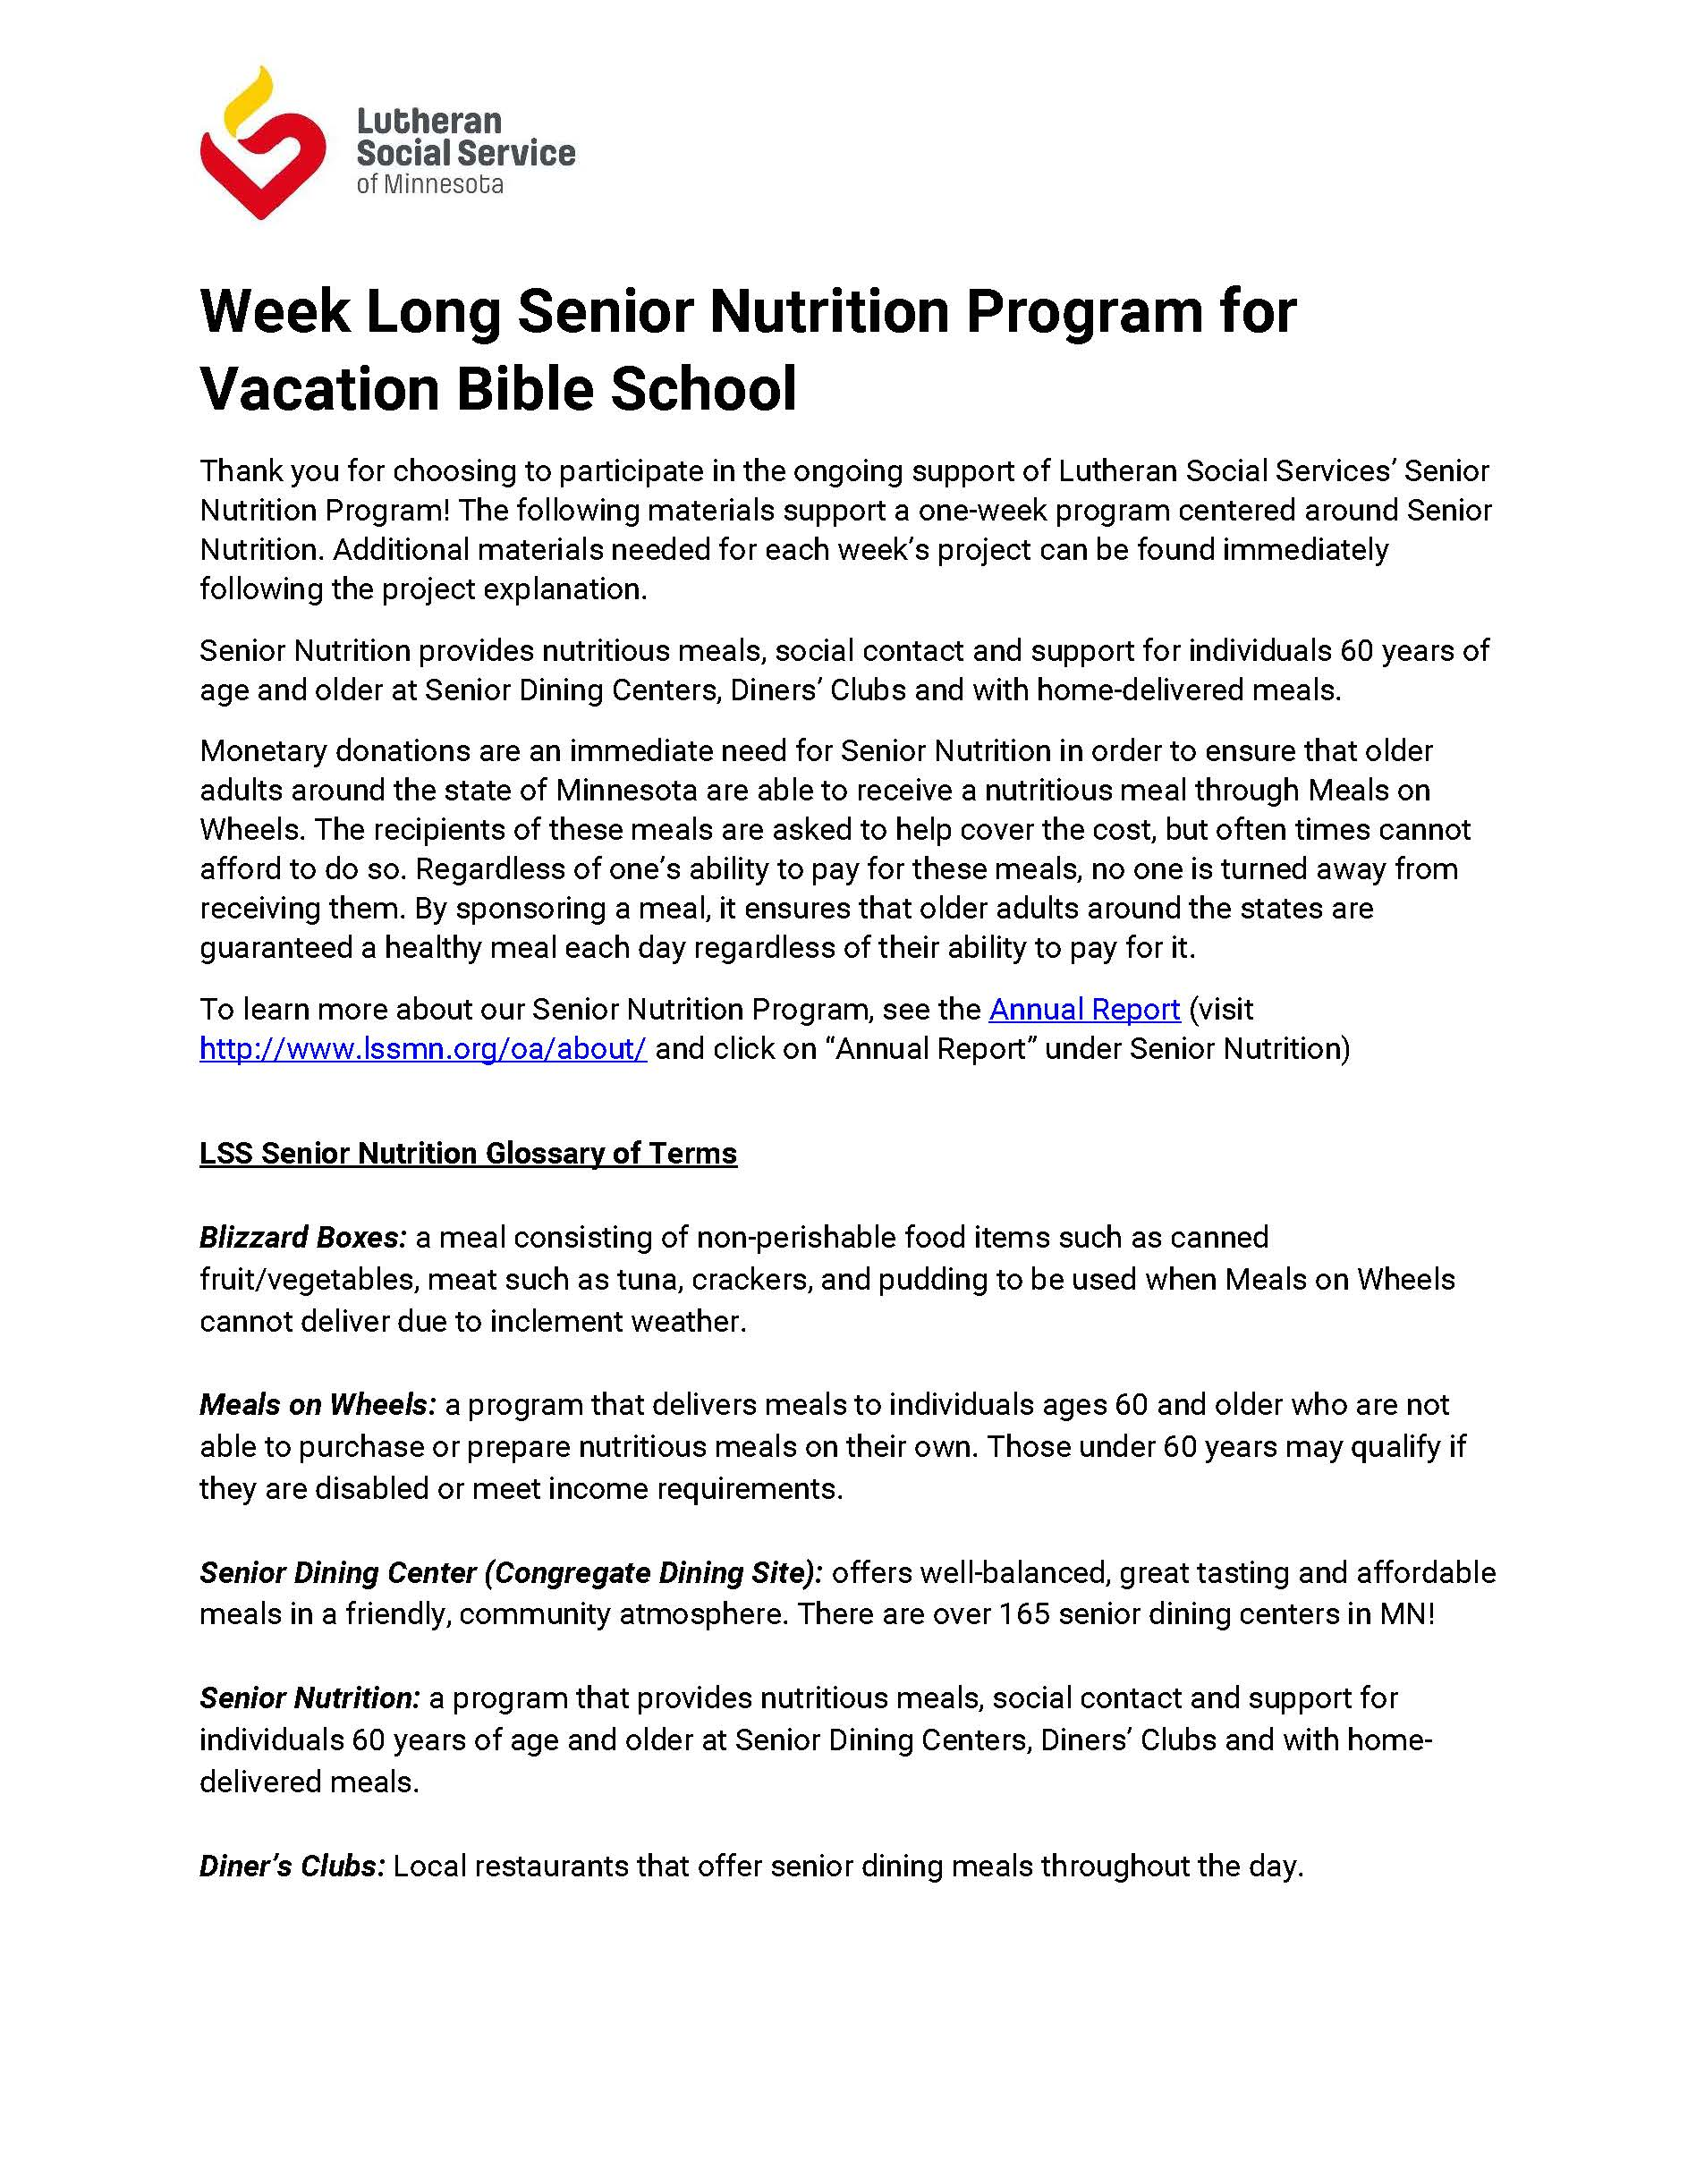 Senior Nutrition Program for Vacation Bible School